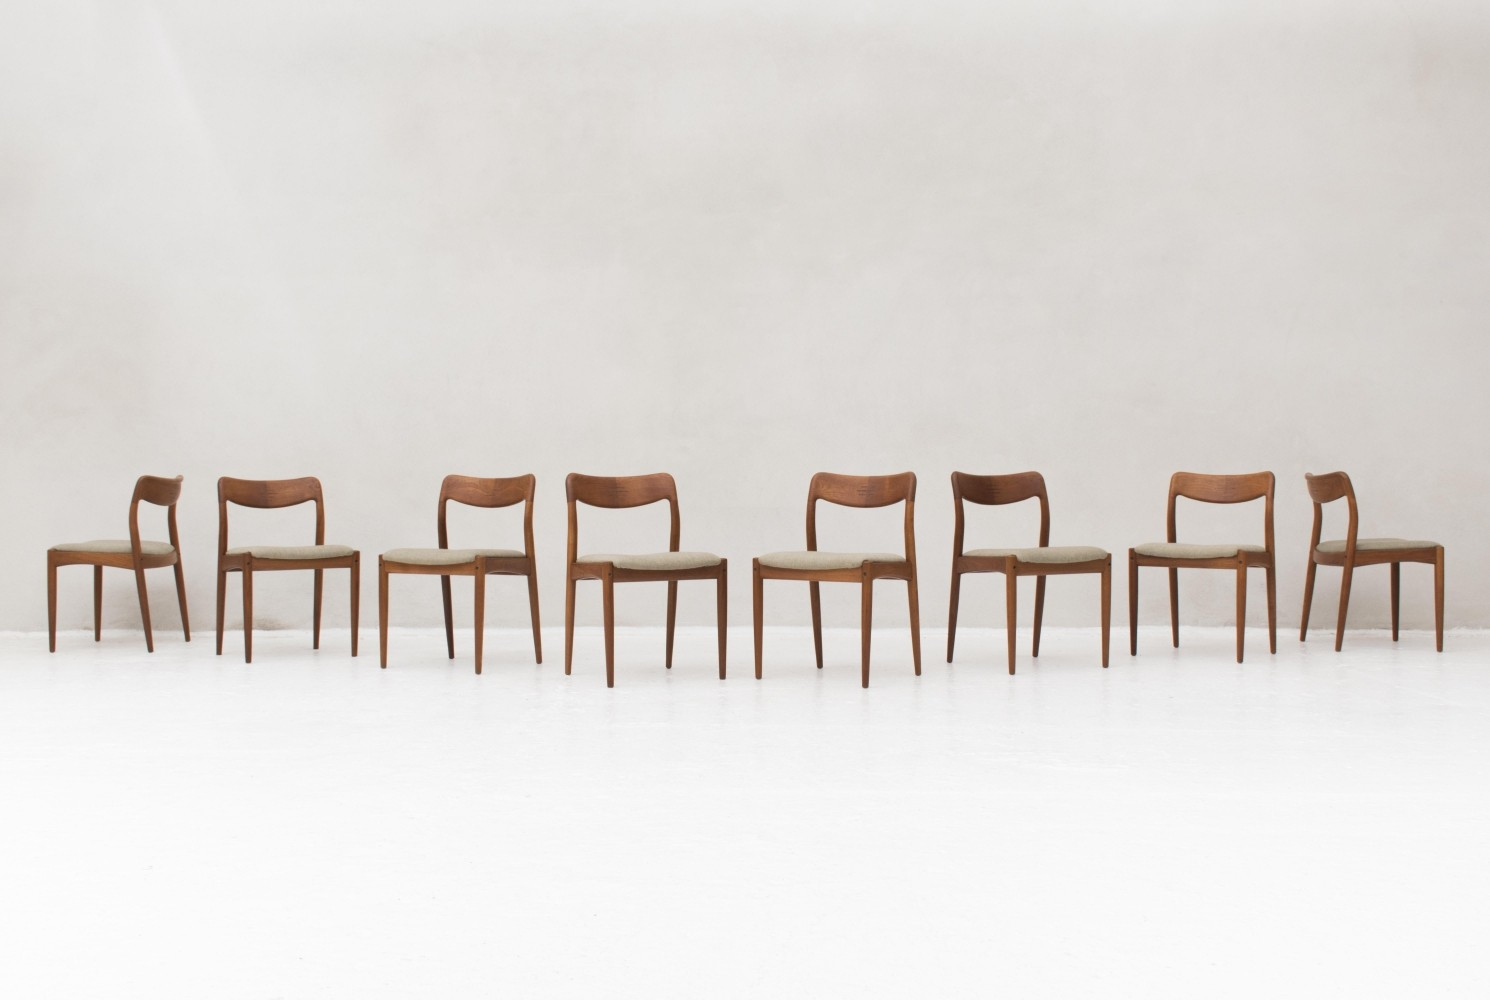 Set of 8 dinner chairs by Johannes Andersen for Uldum Møbelfabrik, 1950s